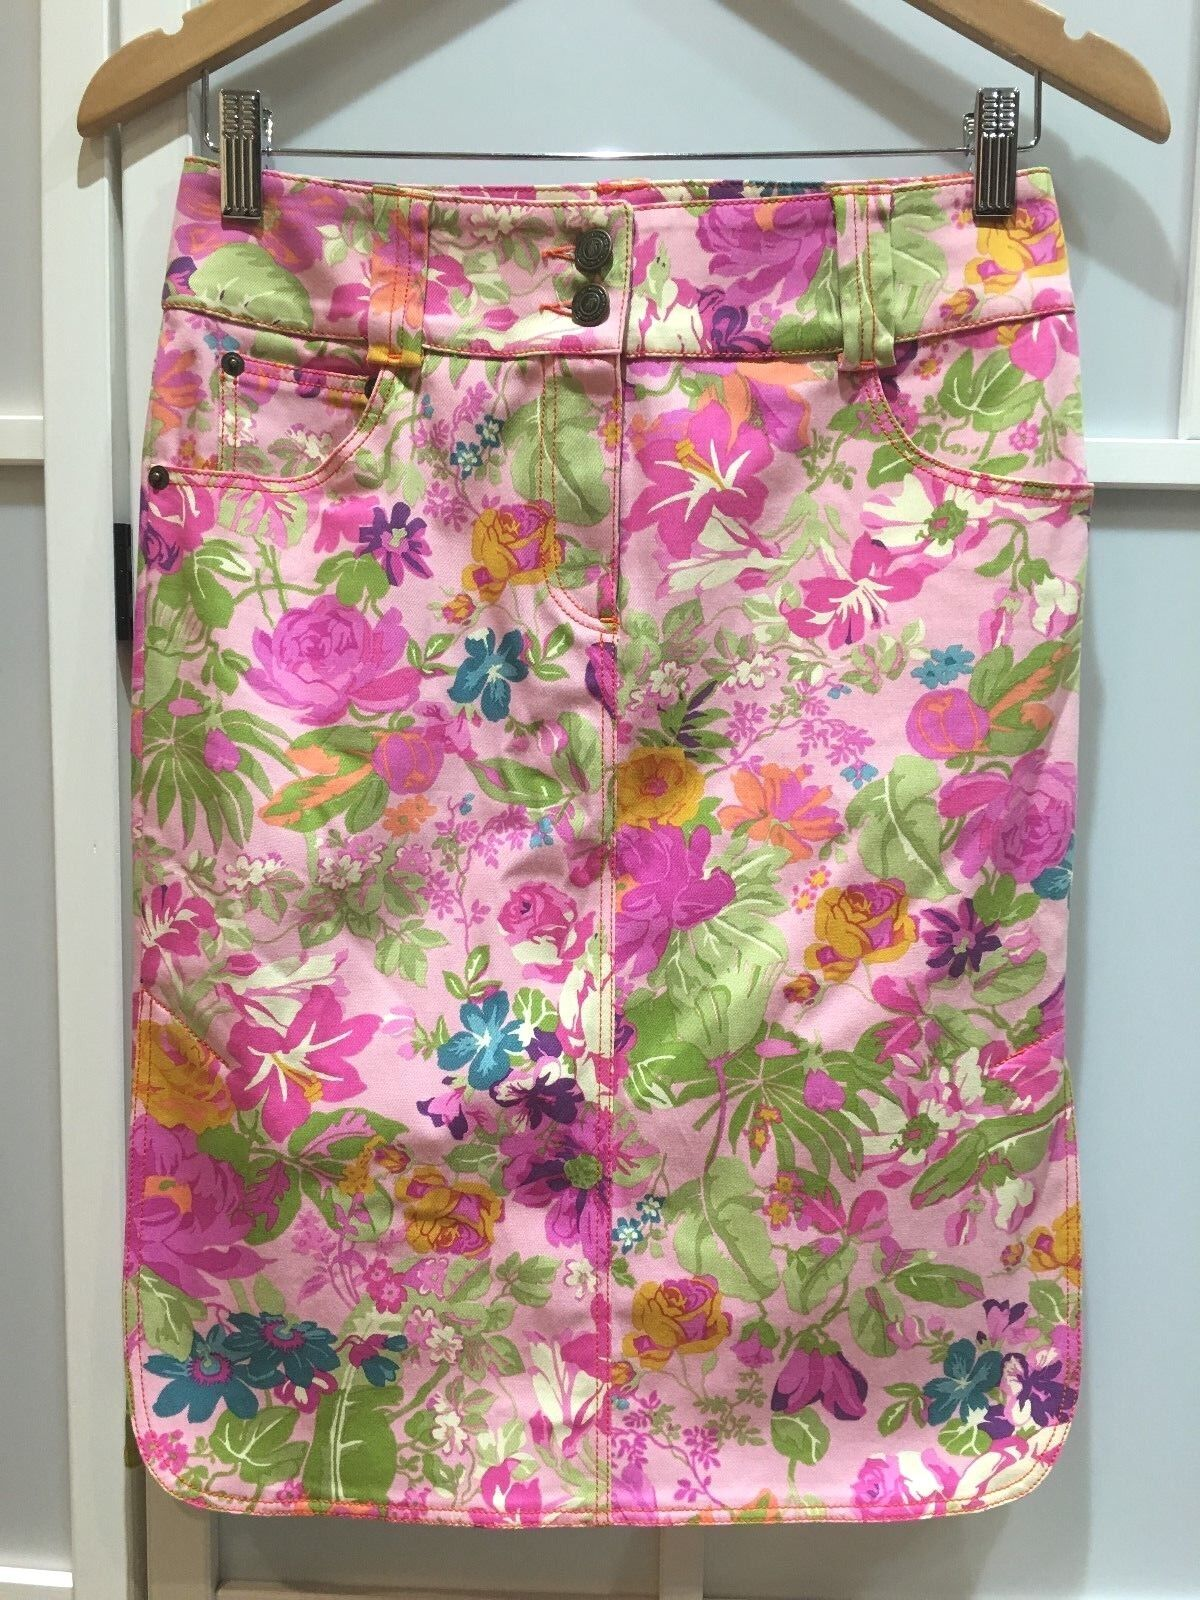 100% authentic vintage Etro floral pattern skirt